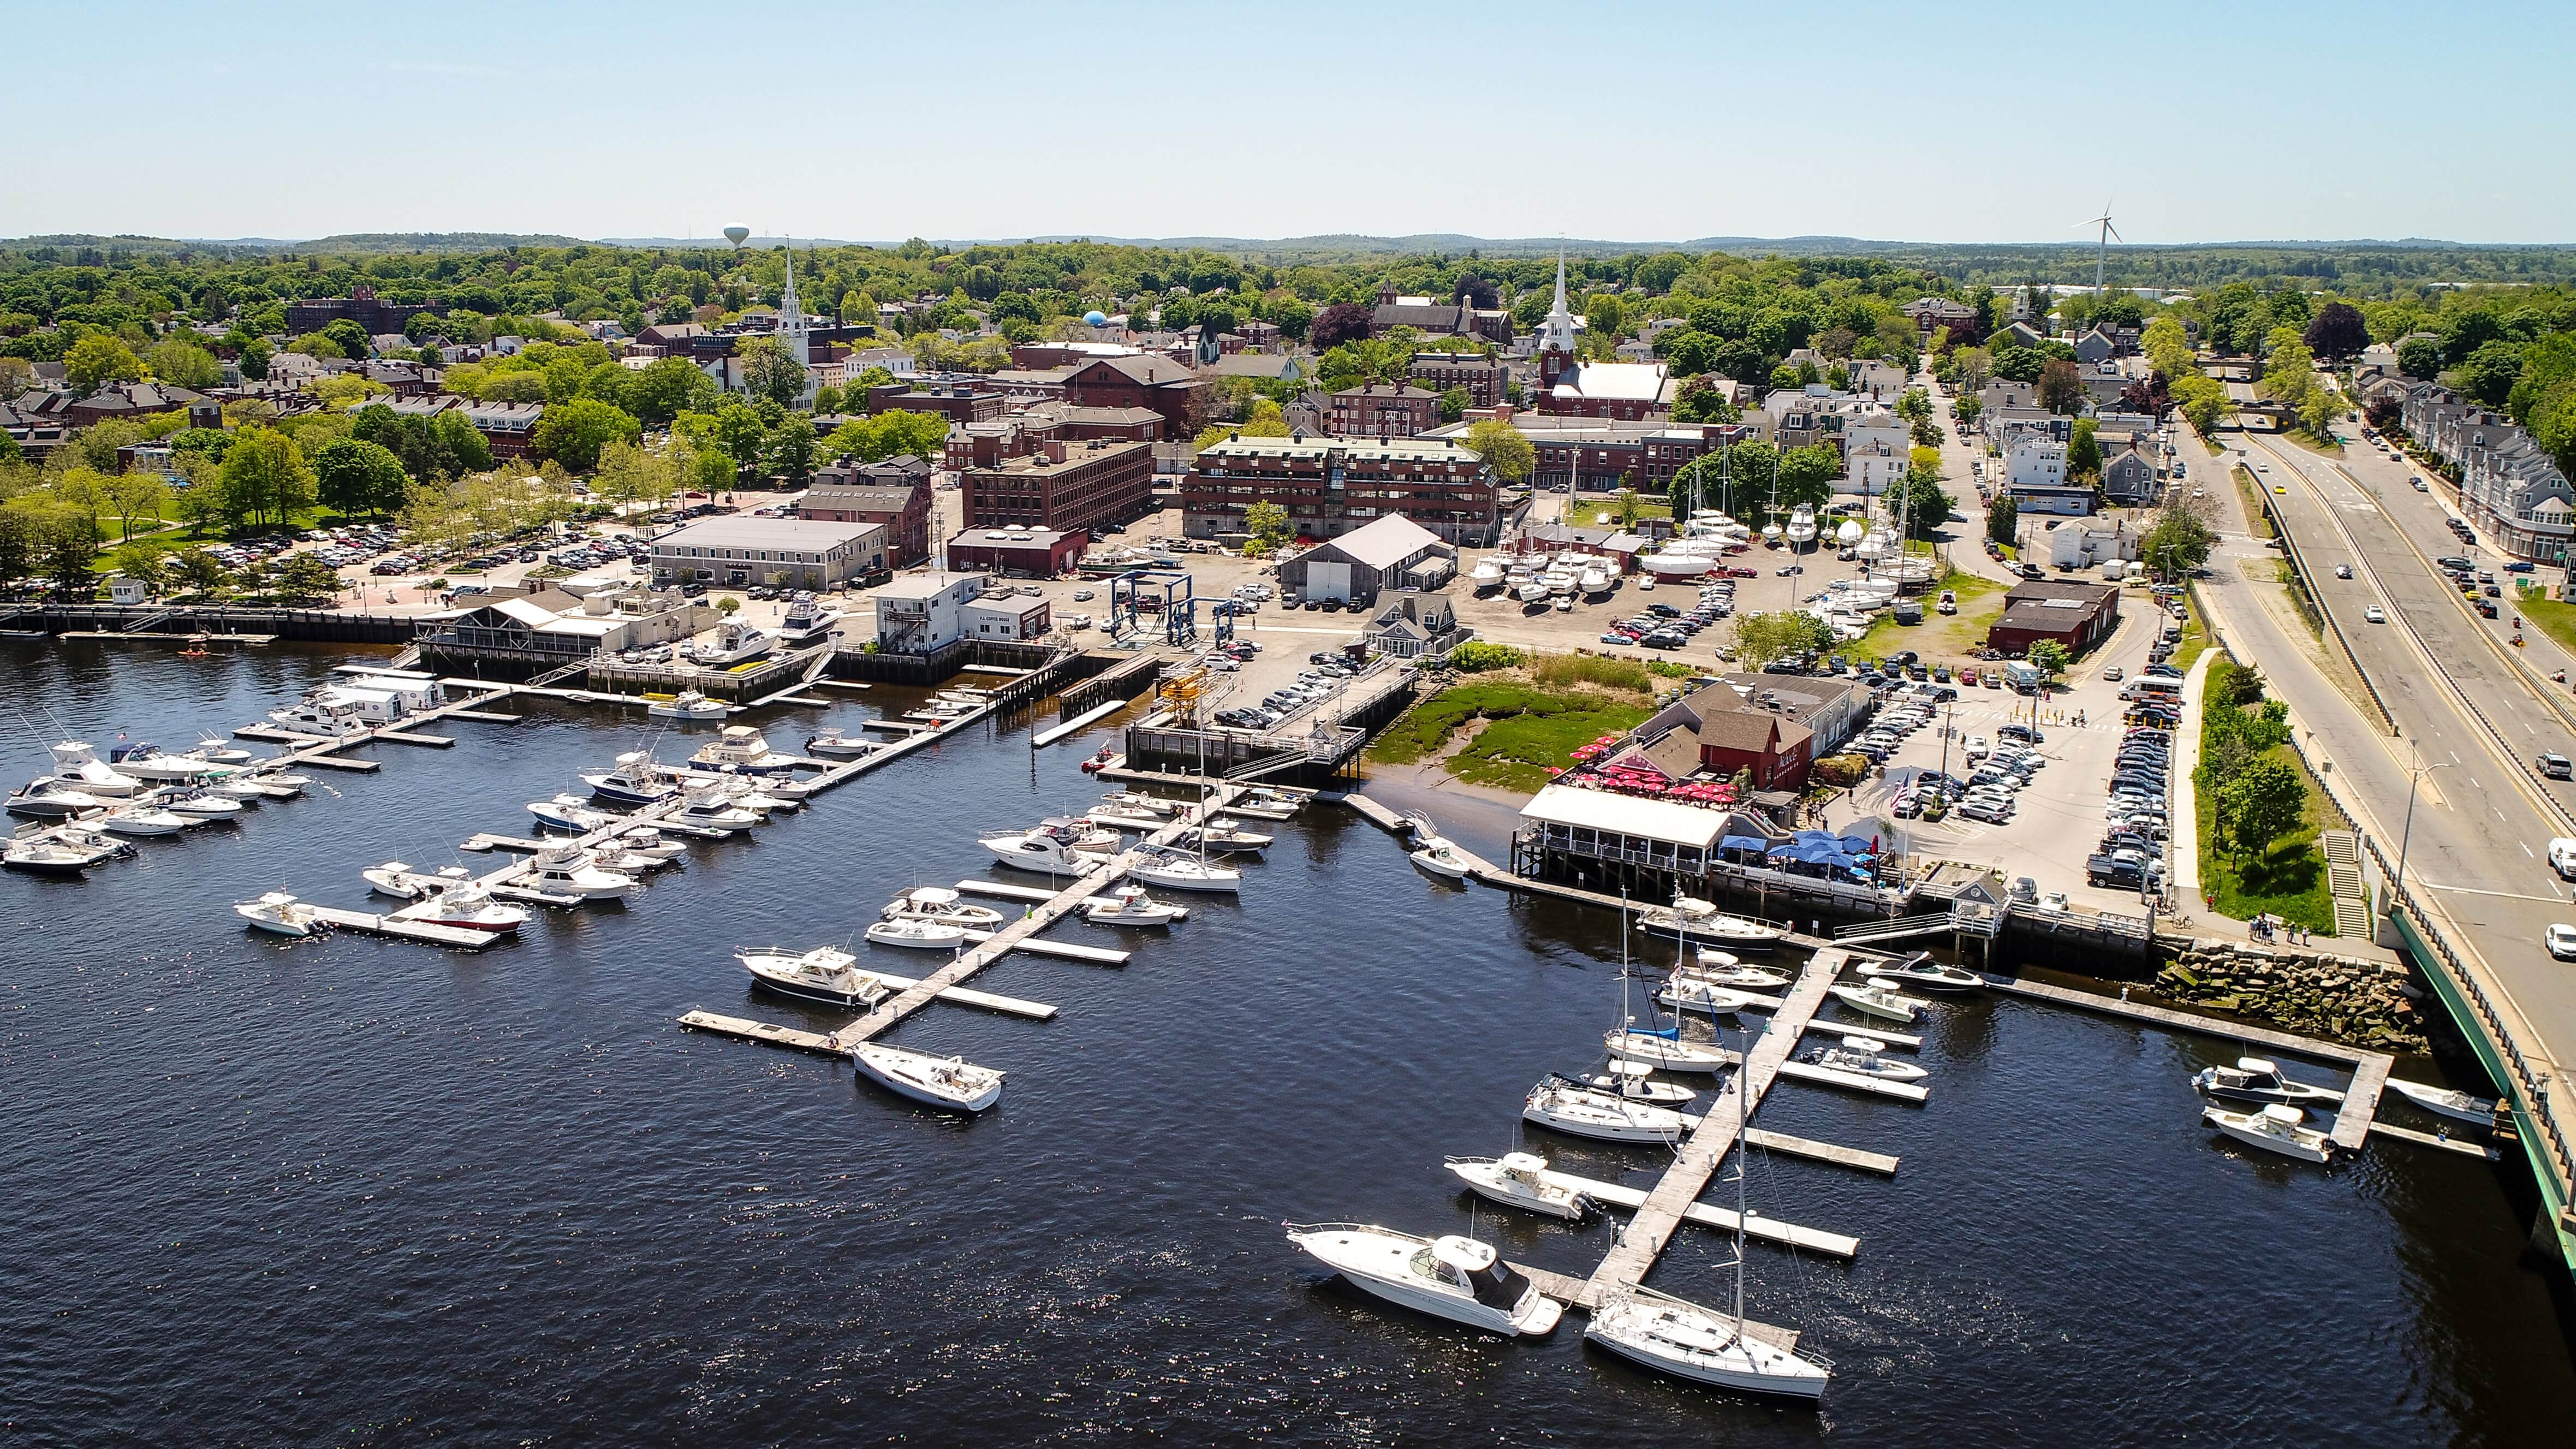 Merrimack users asked to fill out survey